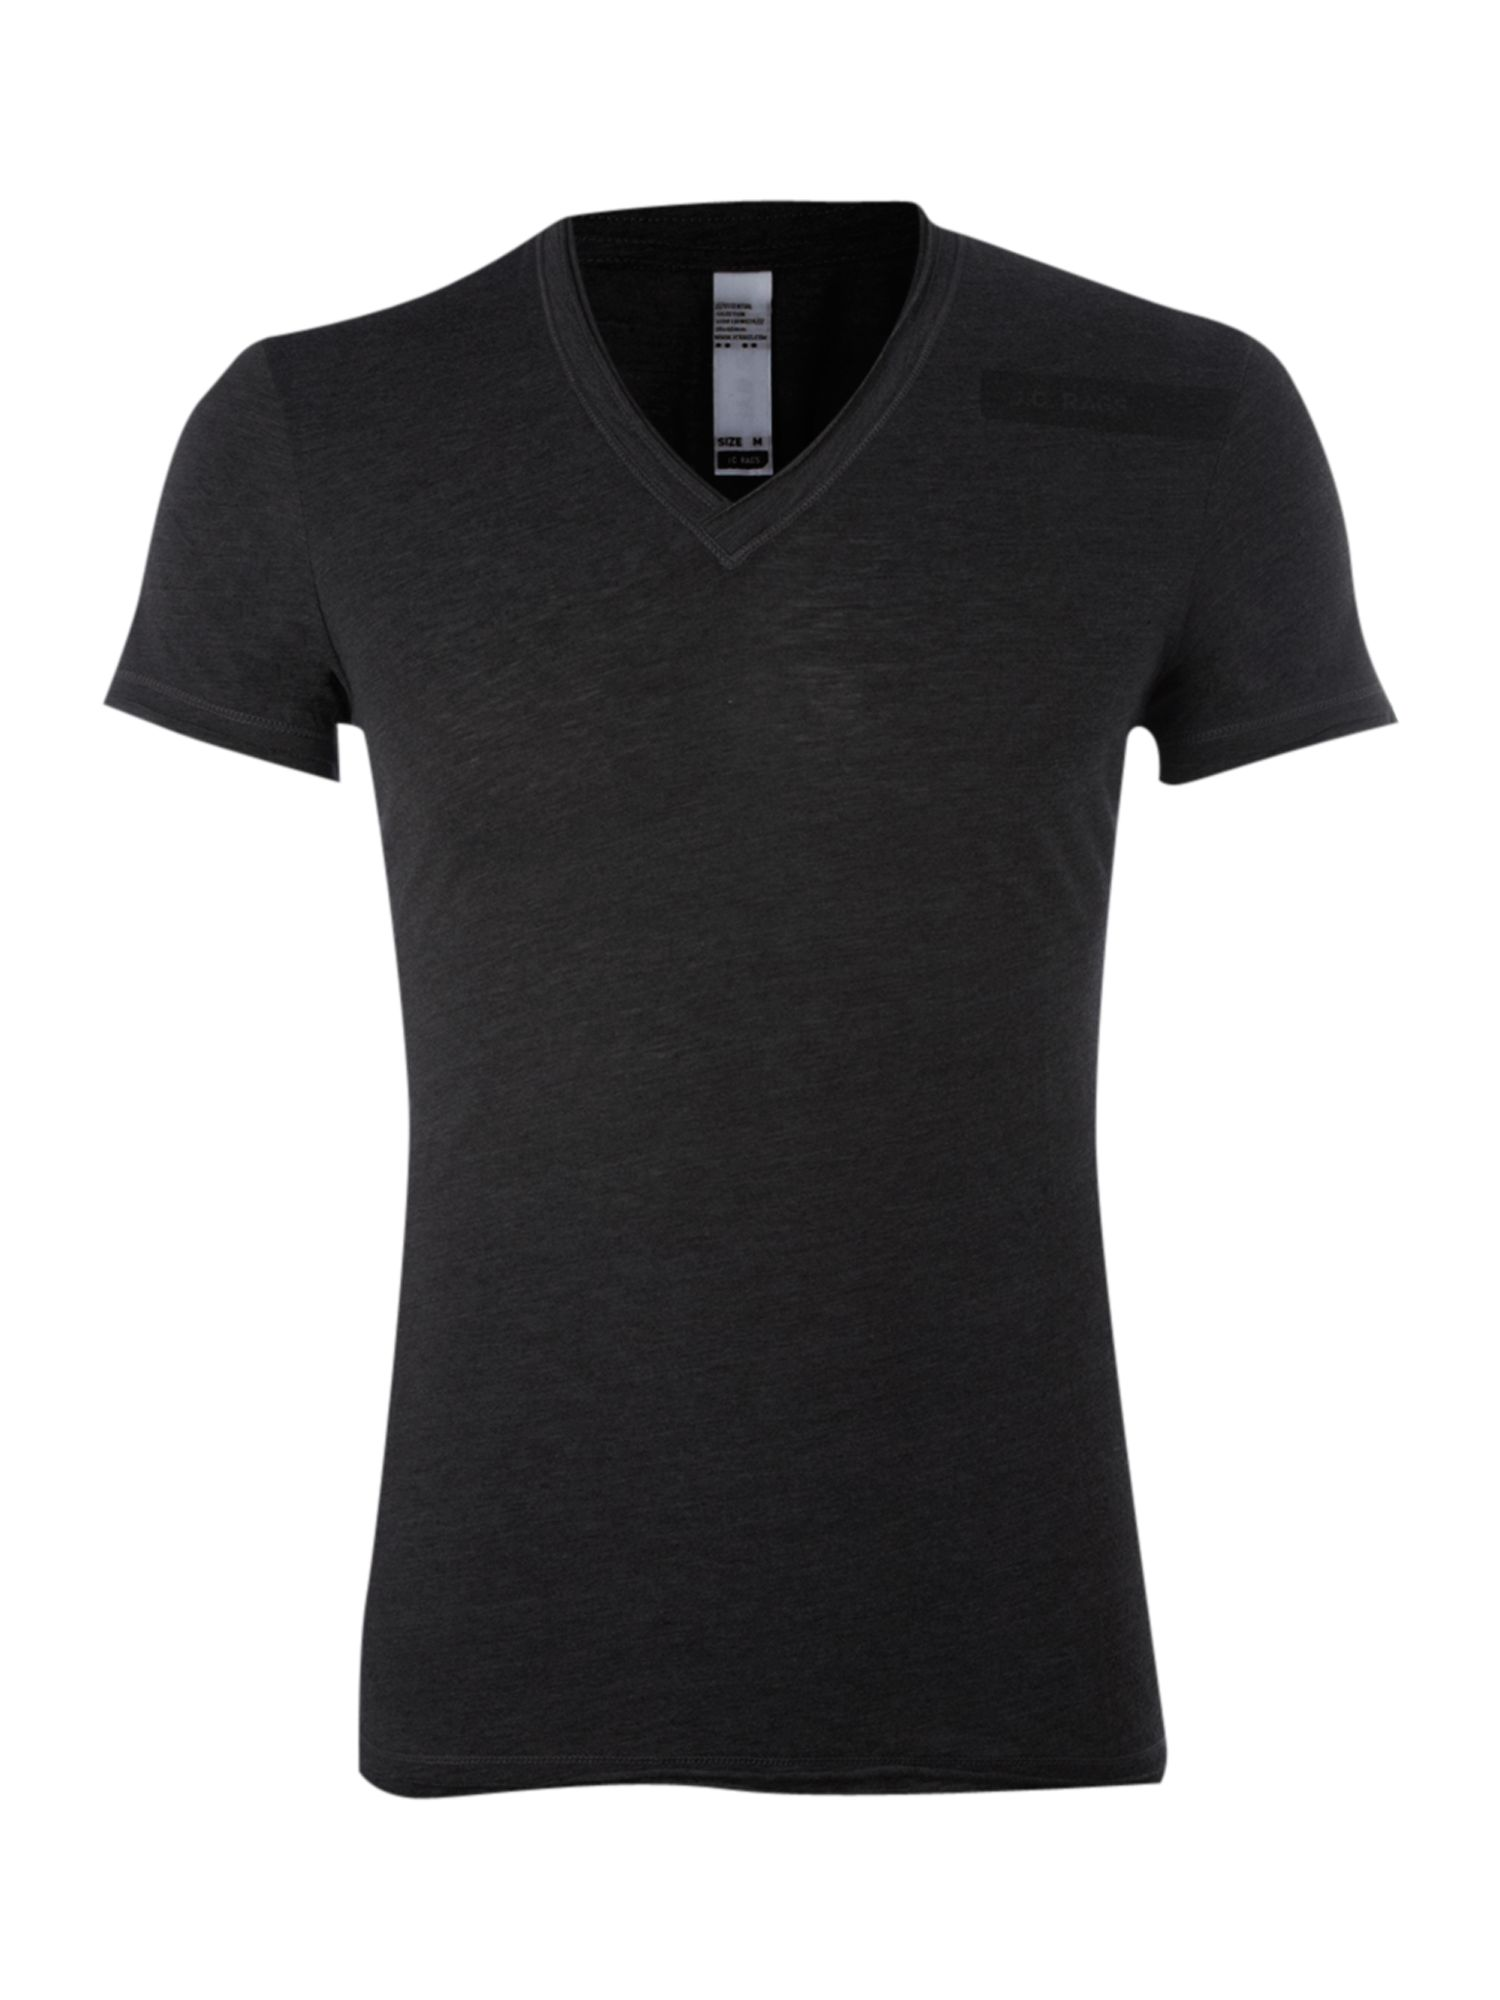 JC Rags Mens JC Rags Washed V-neck T-shirt, product image